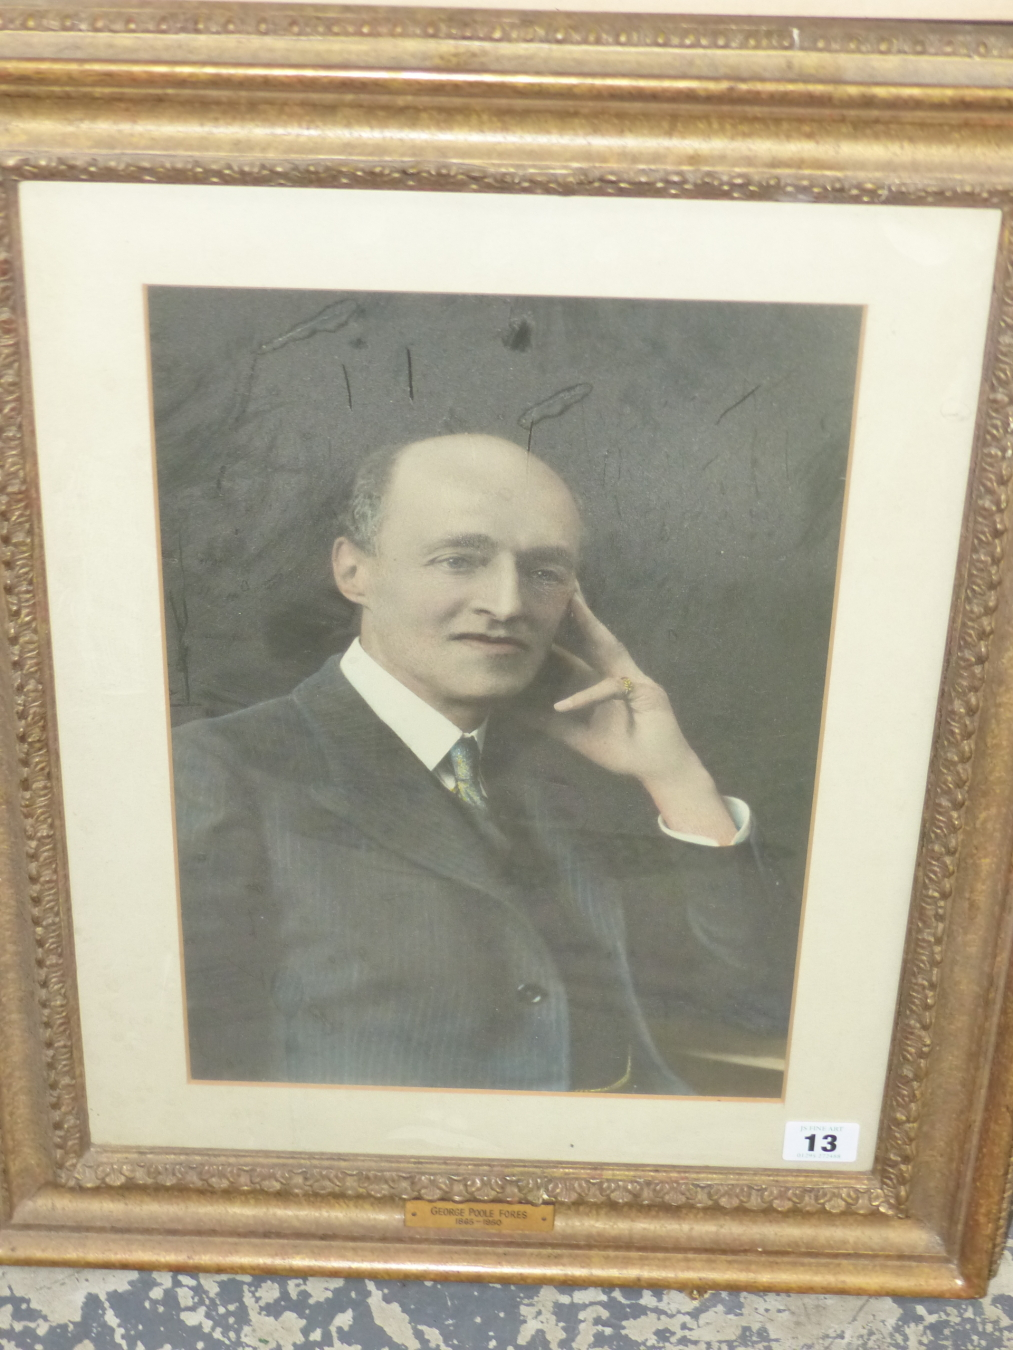 A VINTAGE PHOTOGRAPHIC PORTRAIT OF GEORGE POOLE FORES. 37 x 25cms - Image 2 of 3